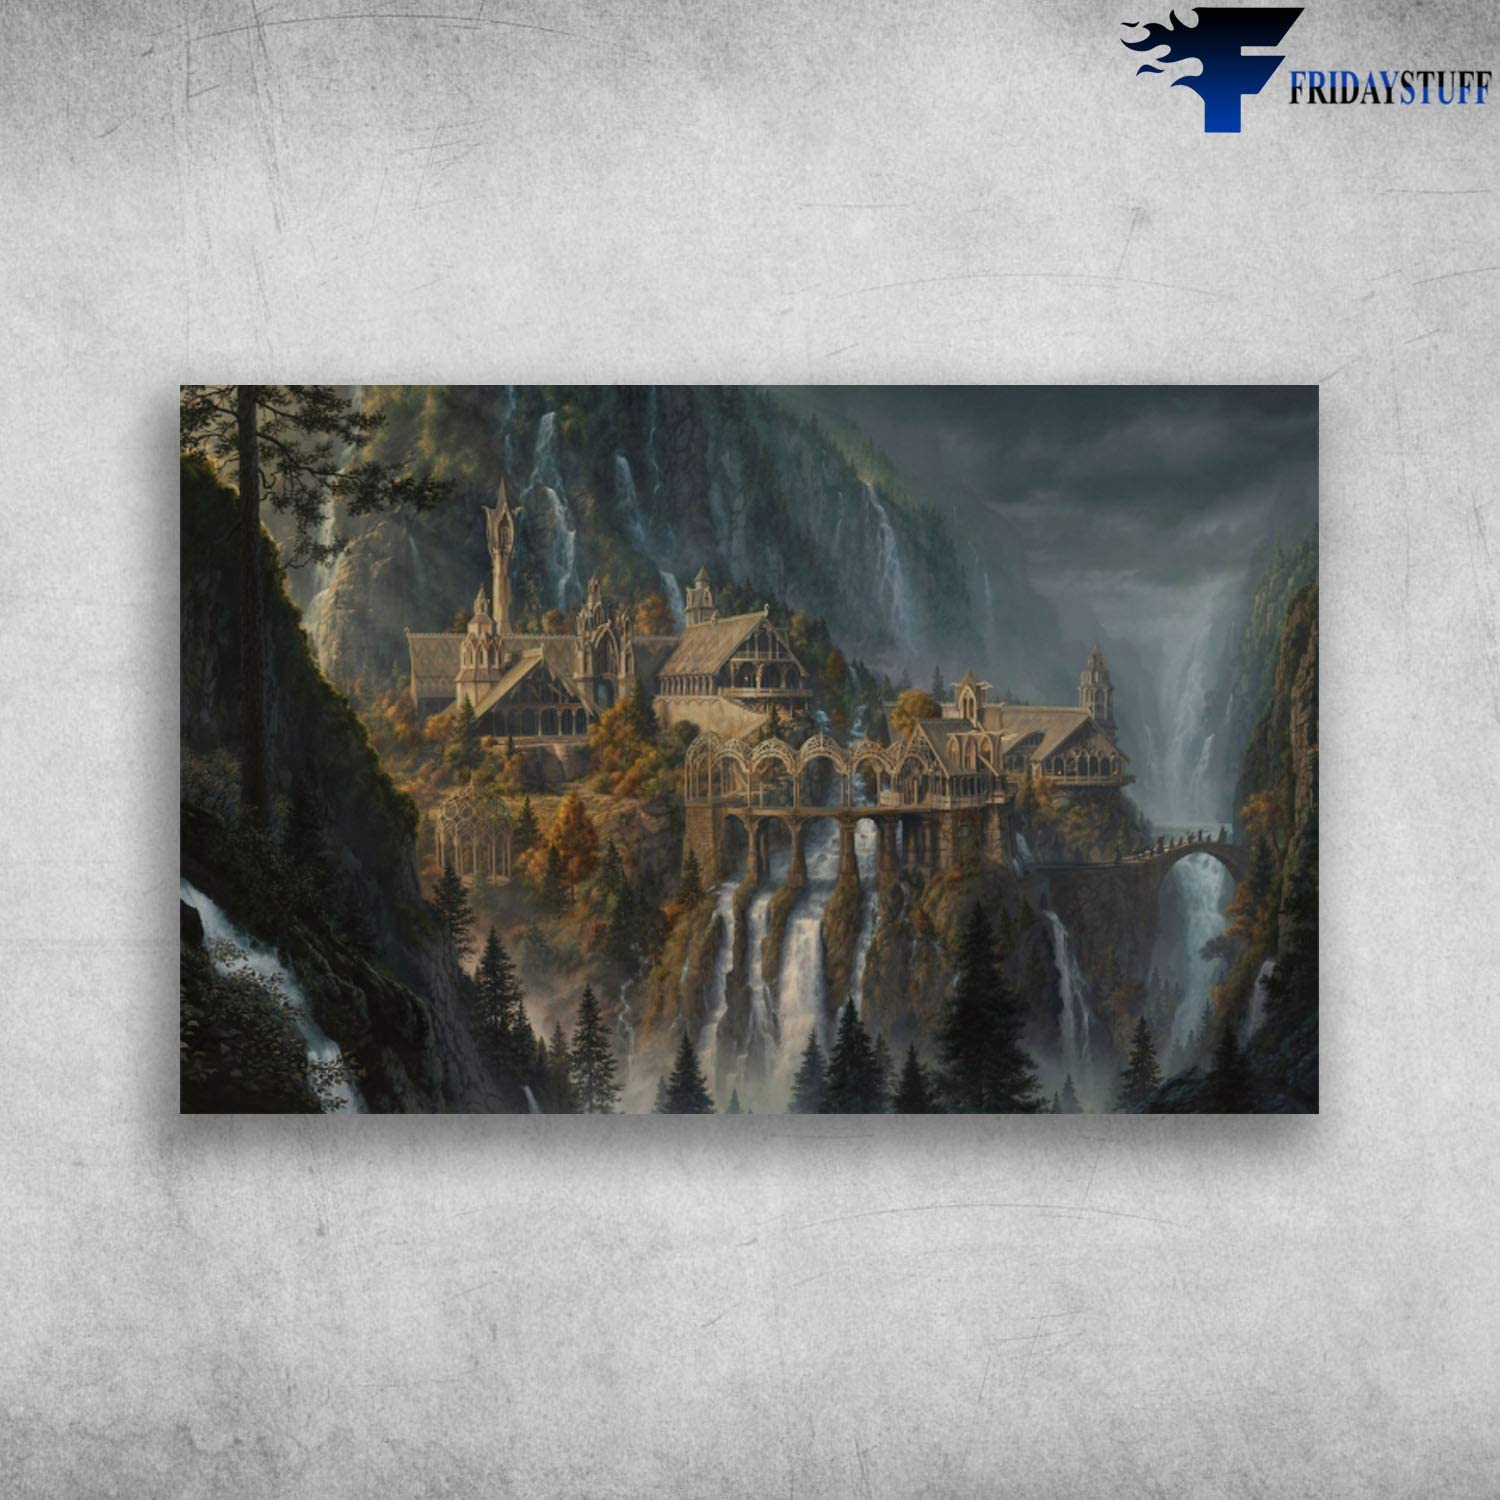 Birthday Gifts Decorative Wall Murals Lifestyle Charming Scenery Lord of The Rings Rivendell Family Friend Gift Unisex, Awesome Decor Bedroom, Living Room Print